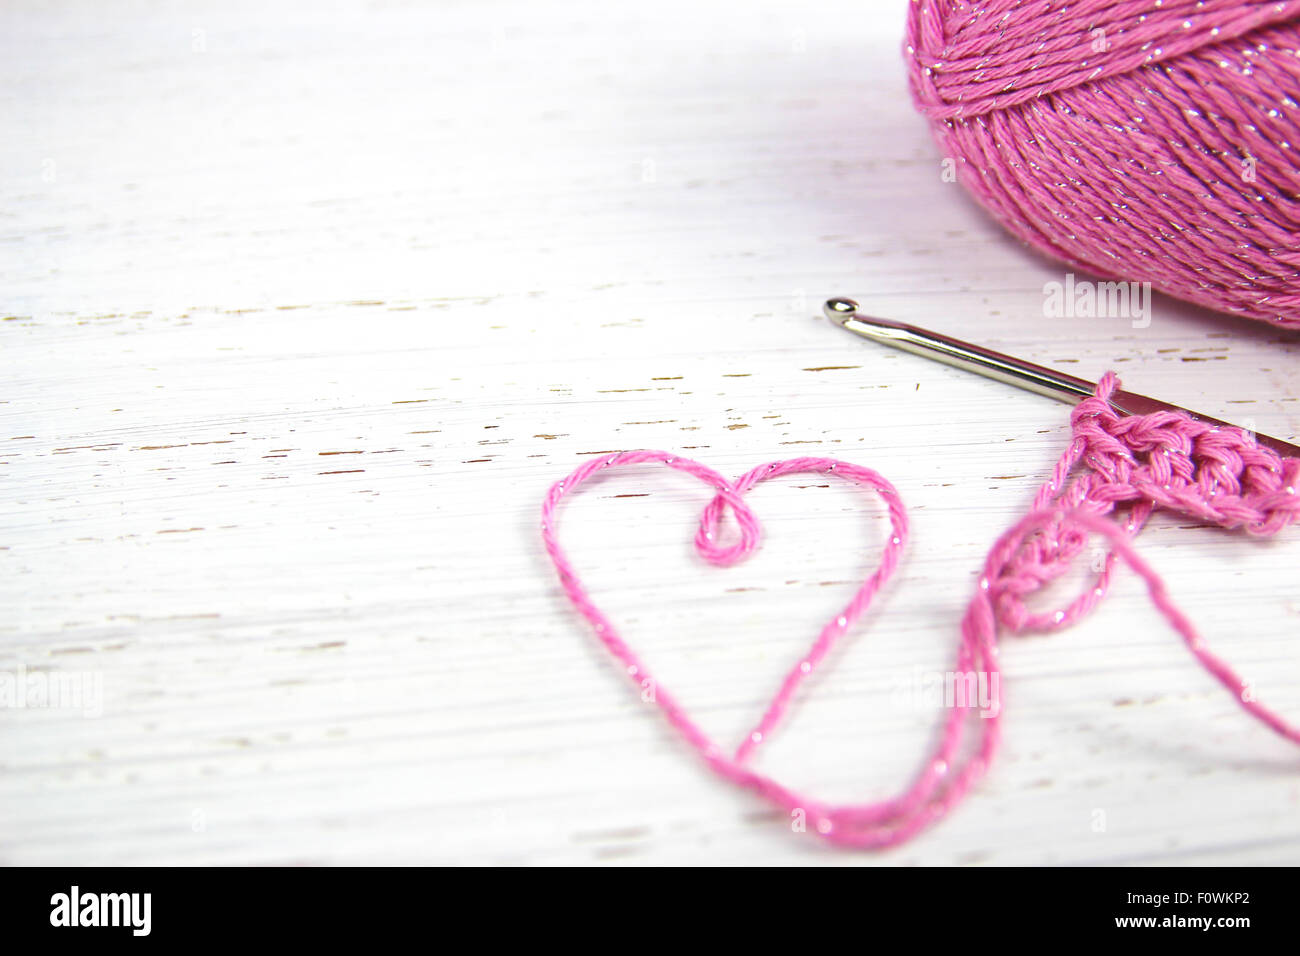 pink crochet background with yarn heart on white rustic wooden background with copy space - Stock Image